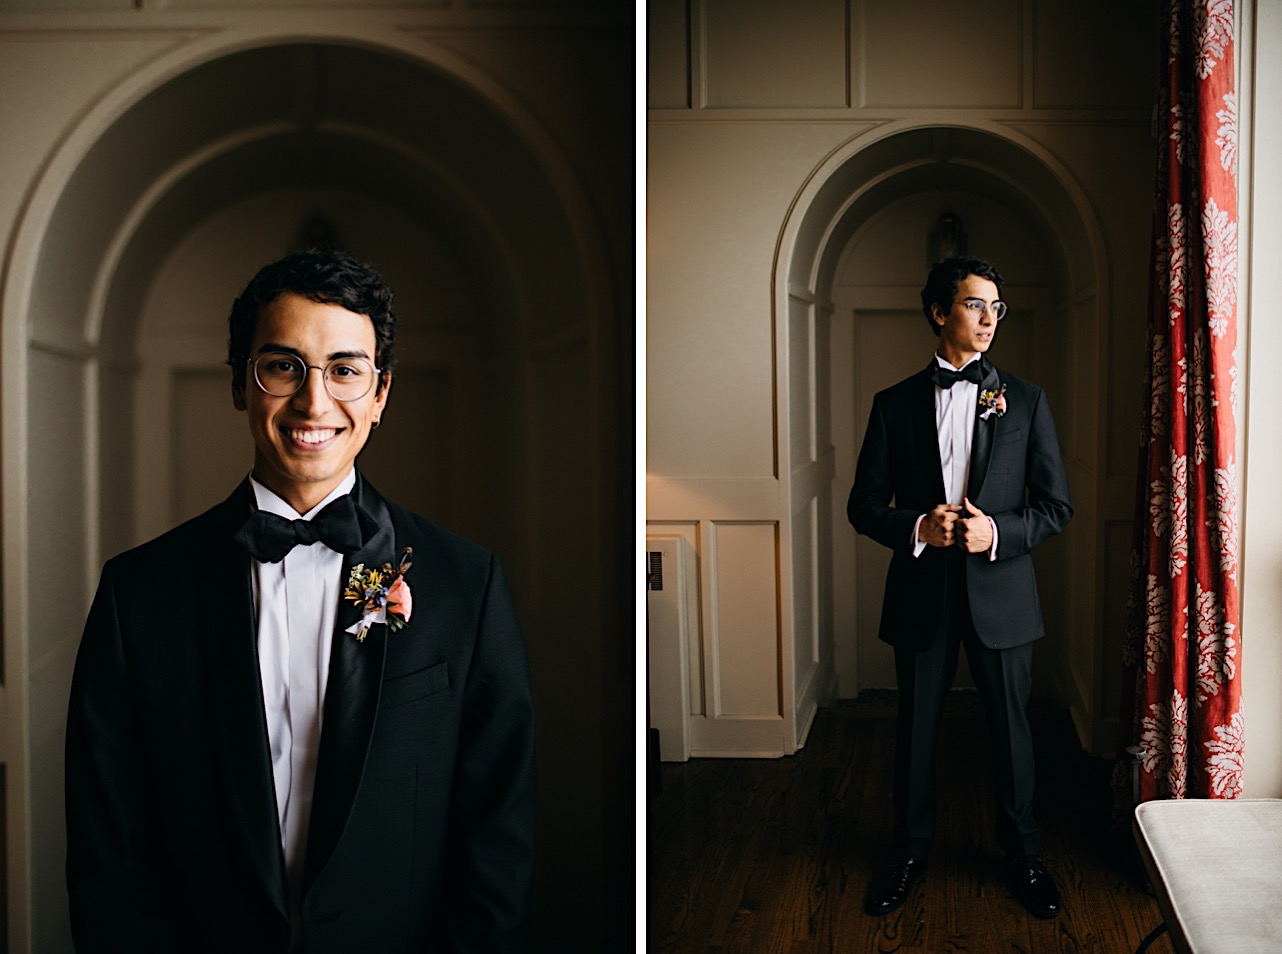 groom stands in arched doorway near bright window smiling